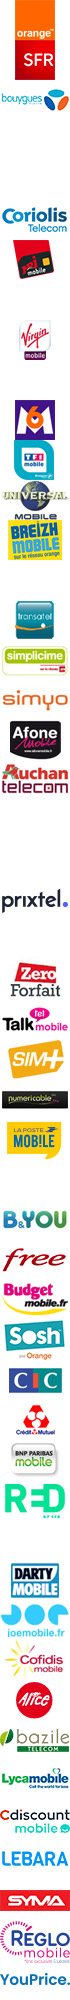 forfait La Poste Mobile SIM 24h/24 illimit� Sans engagement